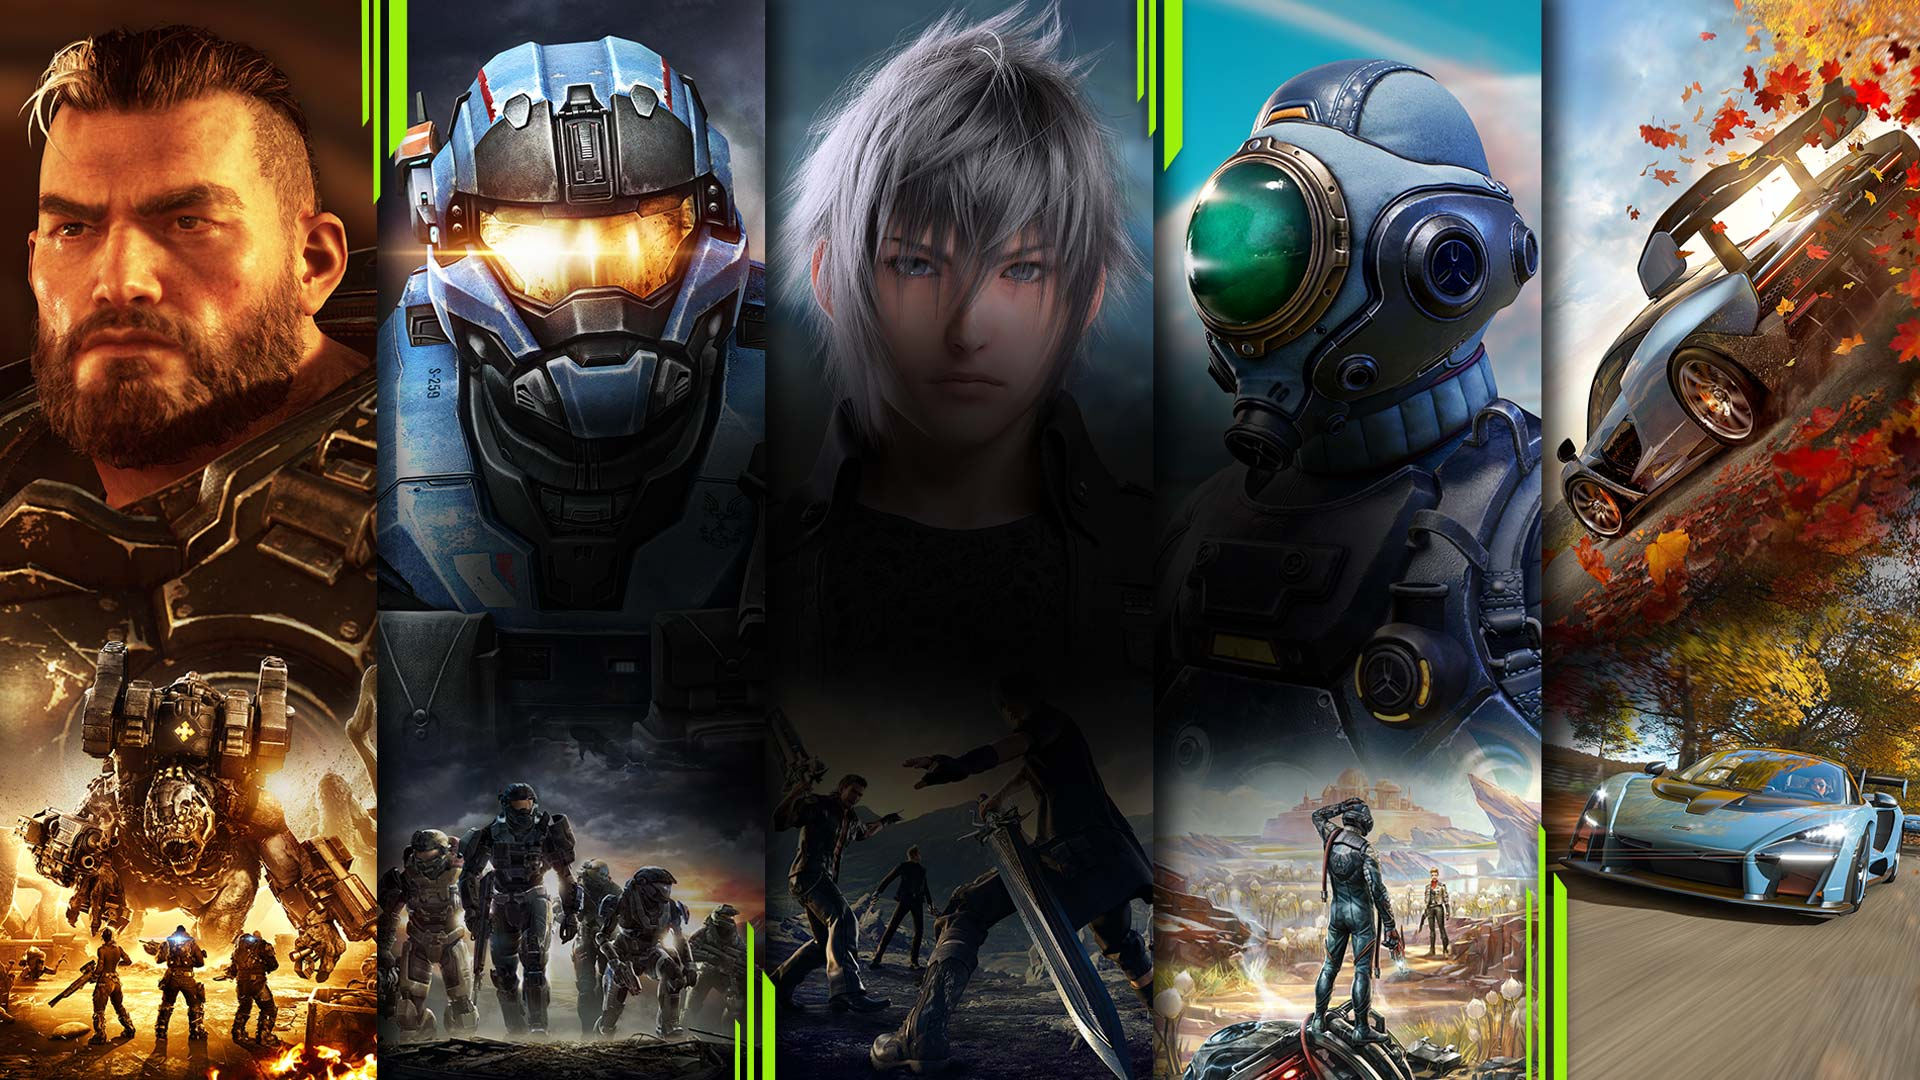 A montage of games available on Xbox Game Pass for PC, including Gears of War, Halo, Final Fantasy, The Outer Worlds and Forza.